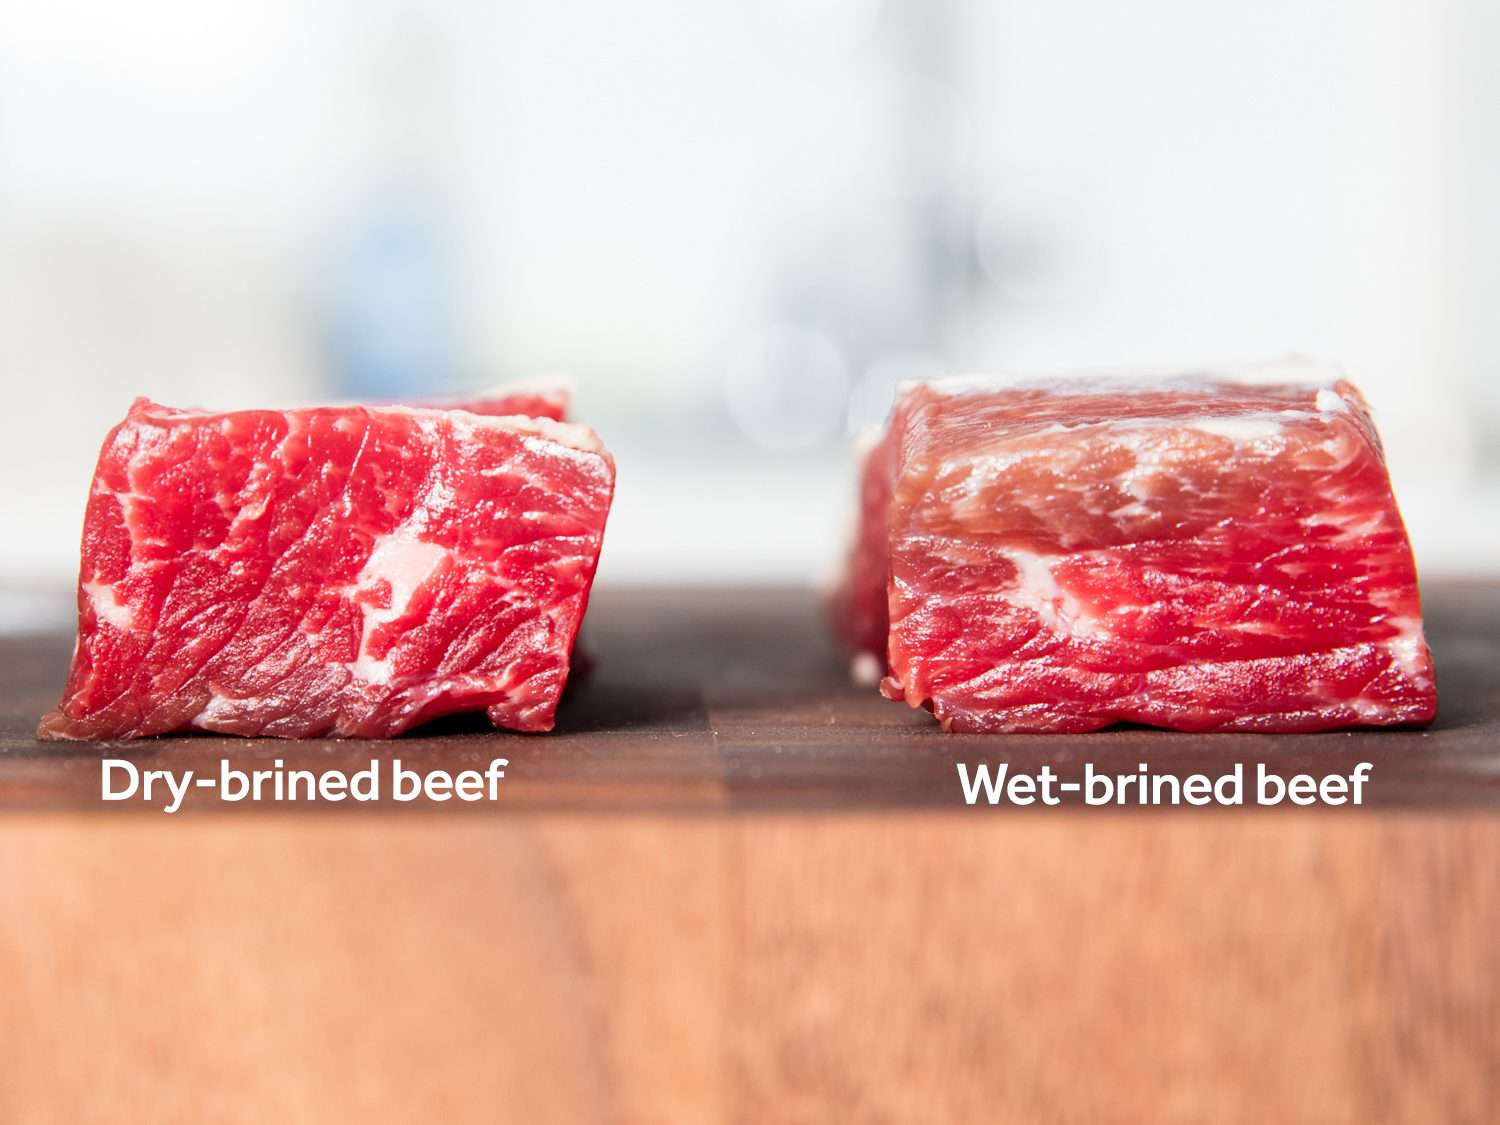 Side-by-side comparison of dry-brined corned beef and wet-brined corned beef